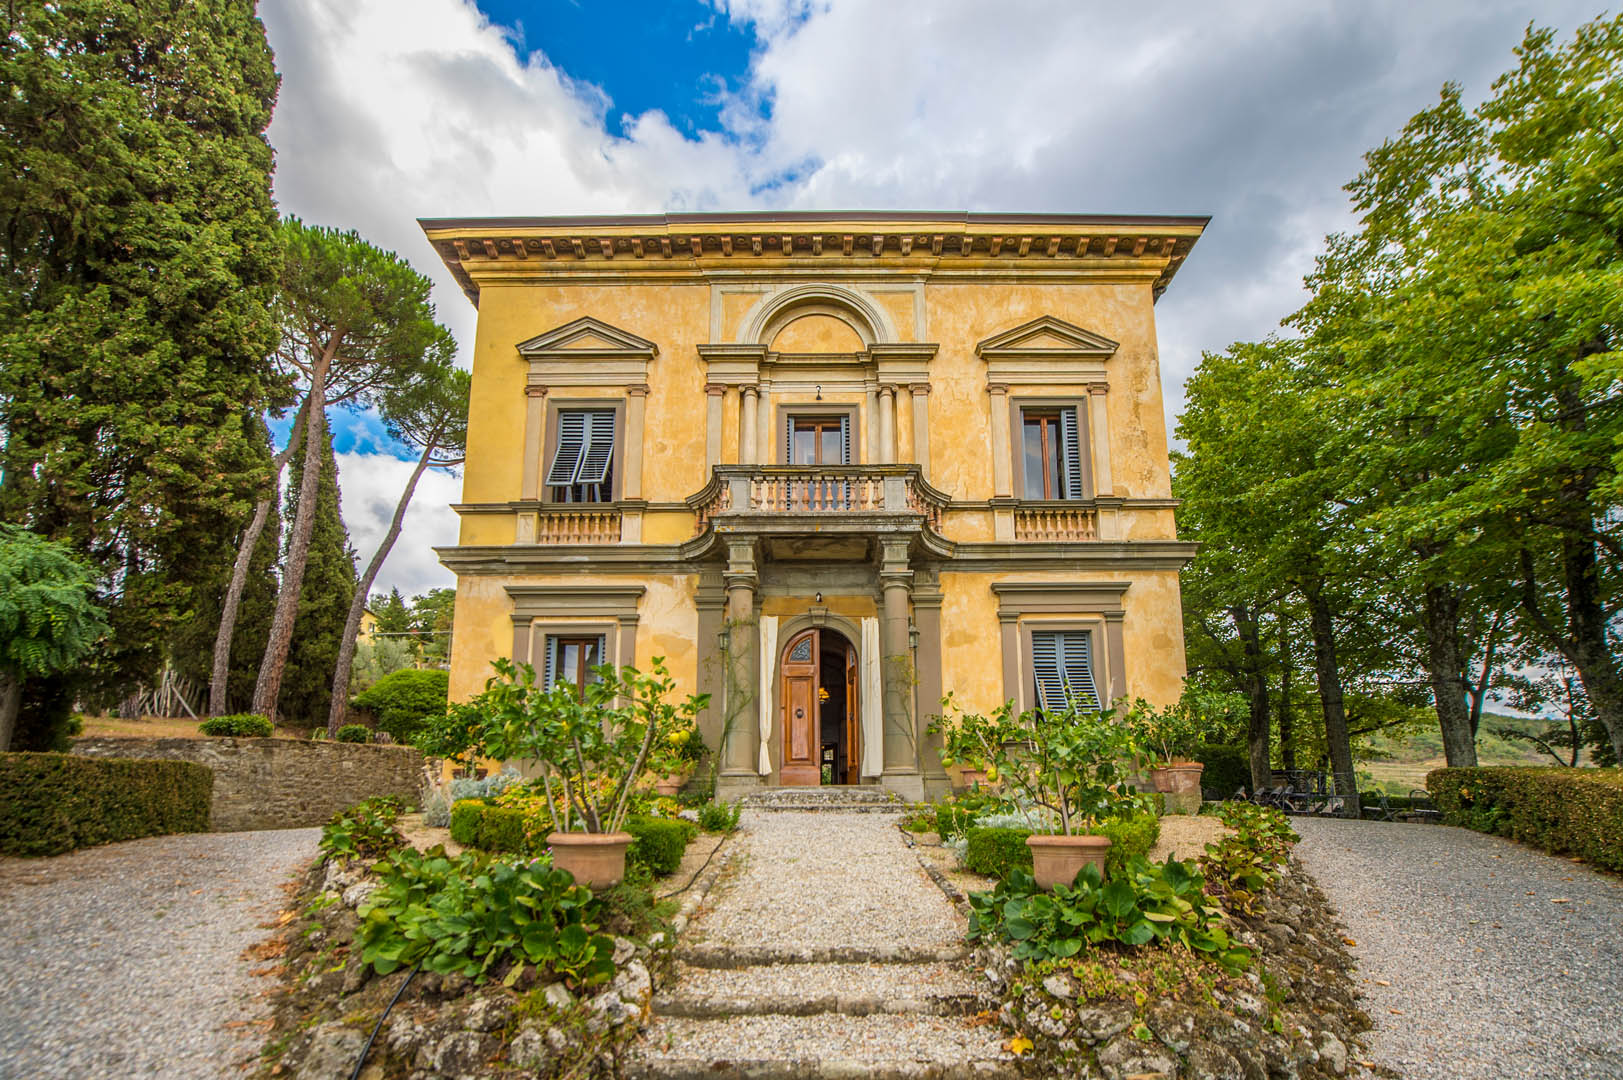 CHIANTI HILLS: VILLA WITH PANORAMIC VIEW, DEPENDANCE AND VINEYARD